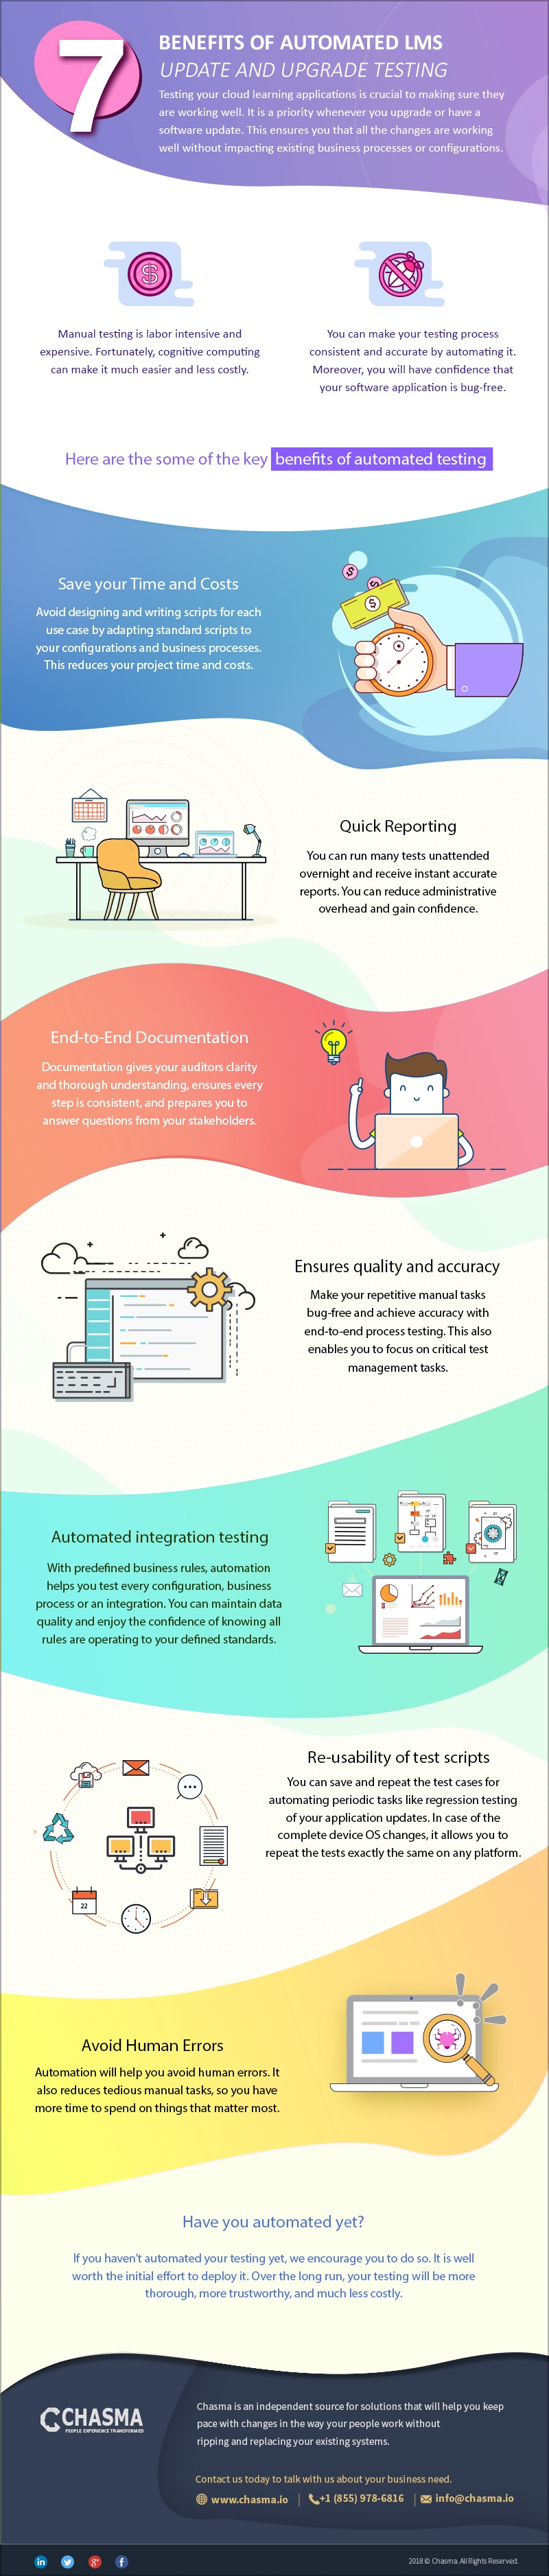 7 Benefits of Automated LMS Update and Upgrade Testing #infographic